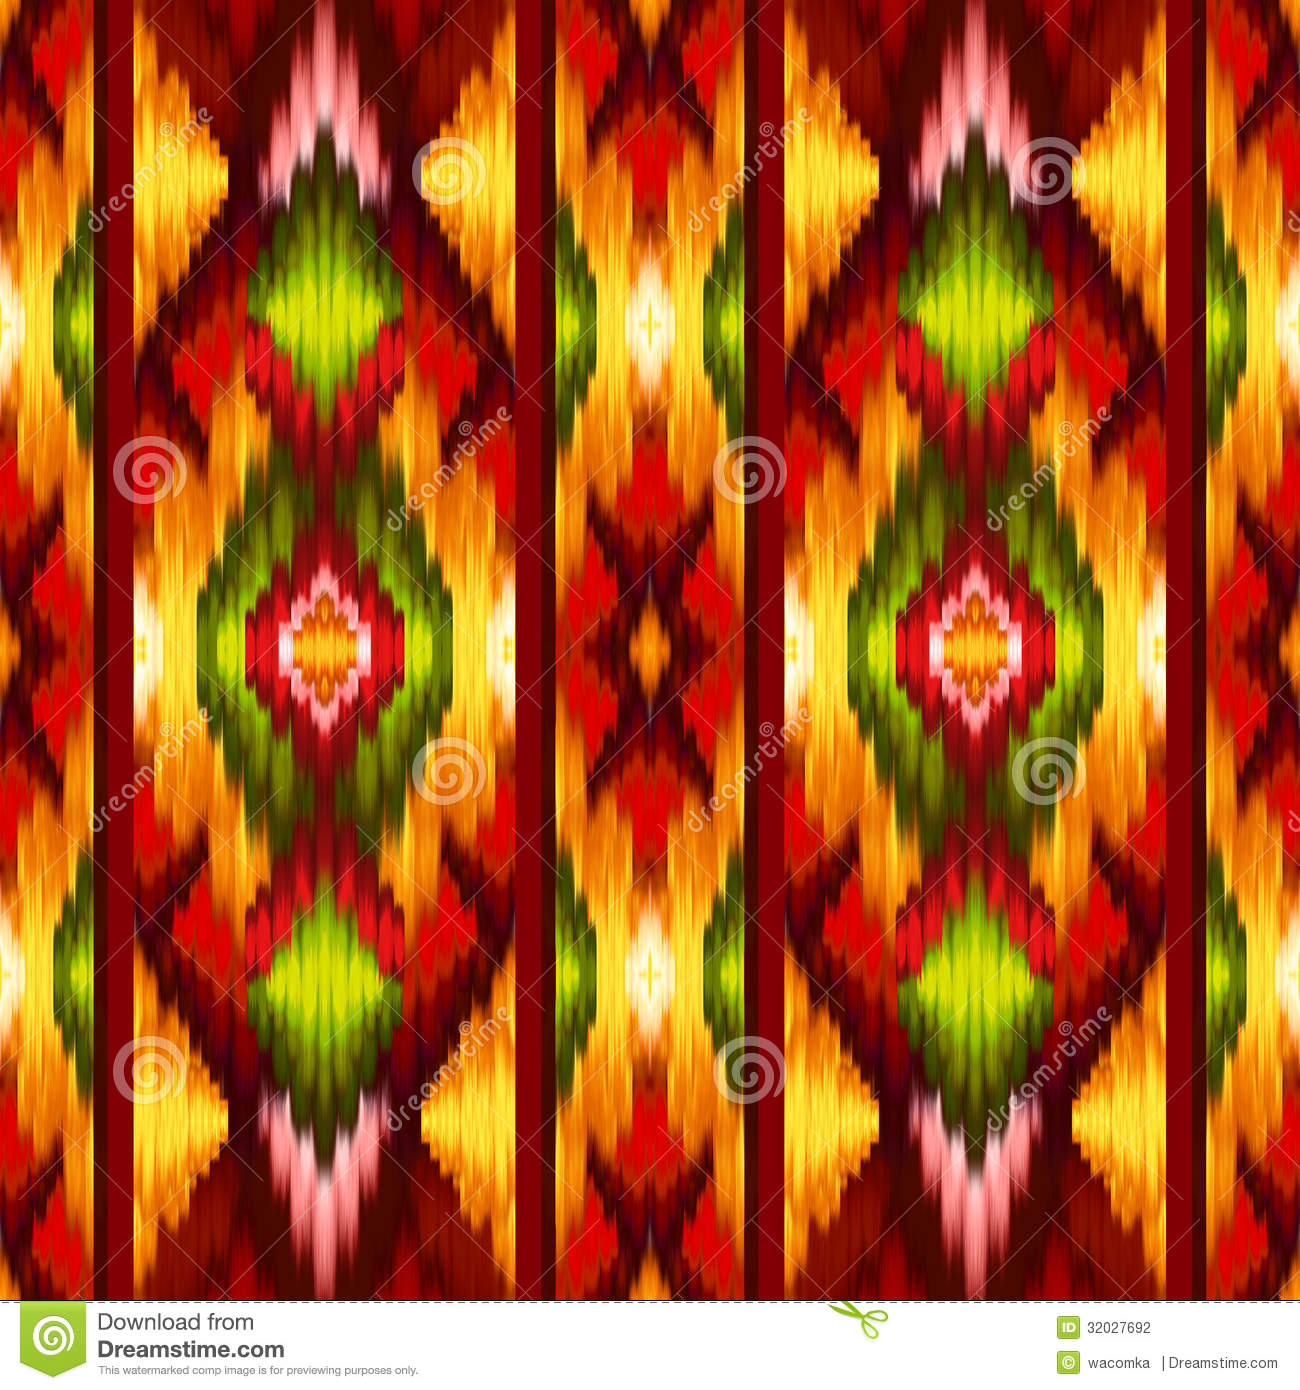 Seamless ethnic intricate ikat pattern background stock - Ikat muster ethno design ...